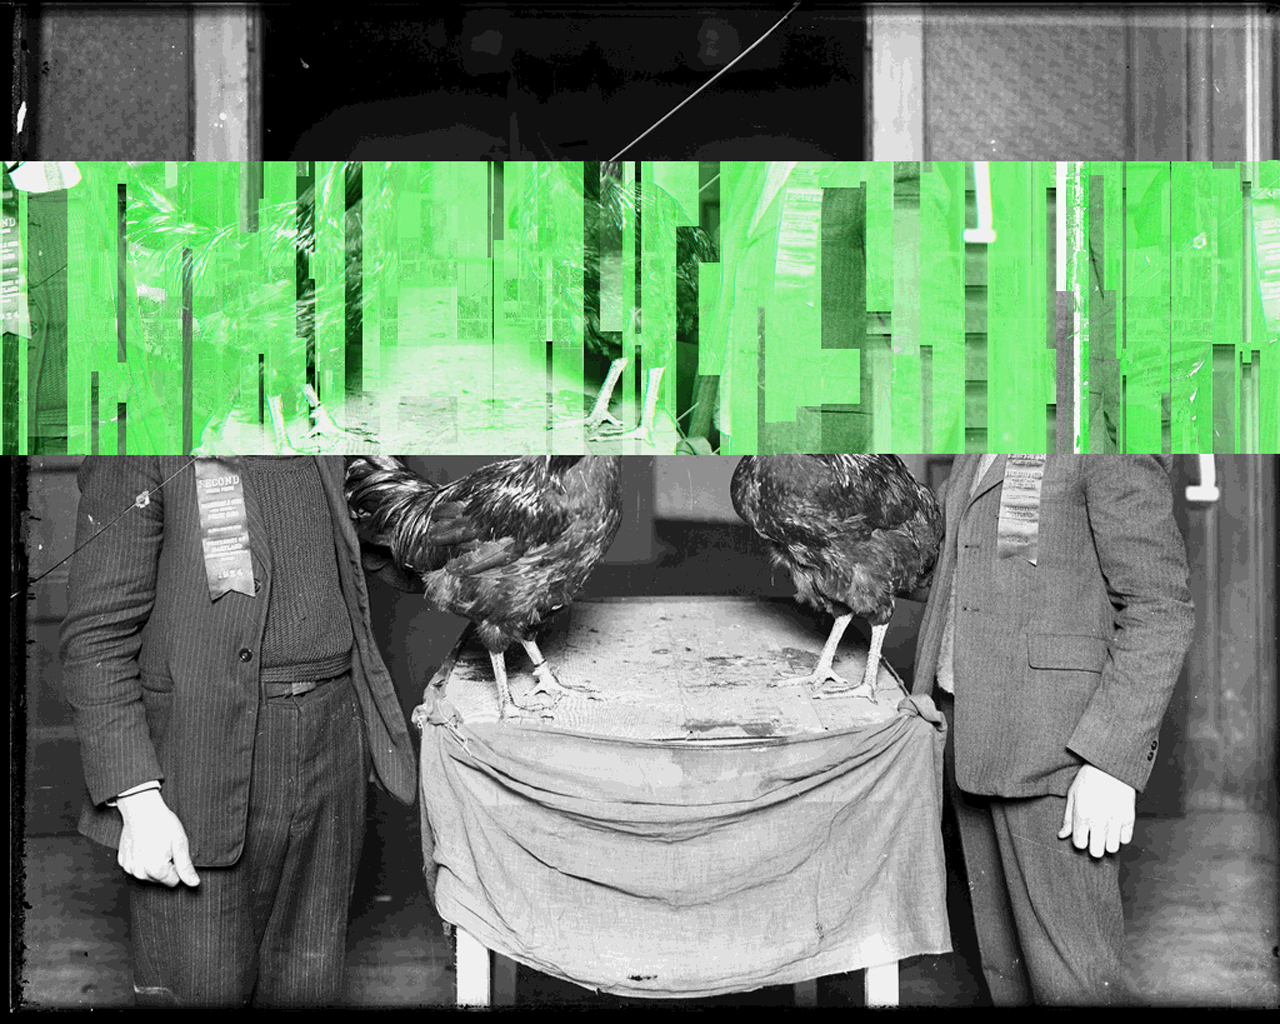 Hughes Remix Series, Untitled (green men with roosters), 2013.